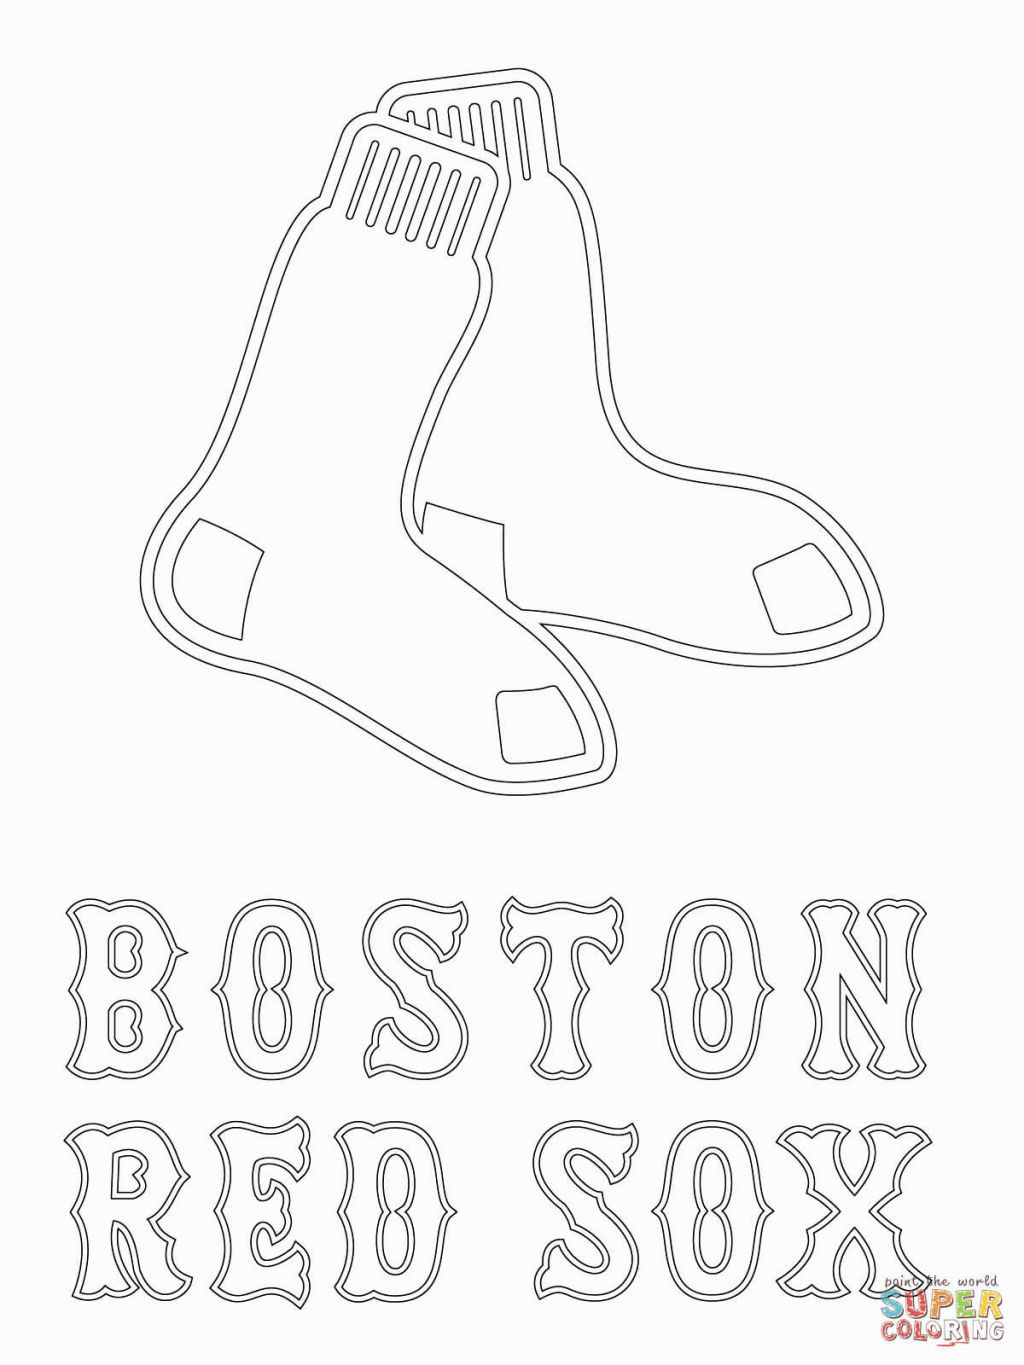 Red Sox Coloring Pages